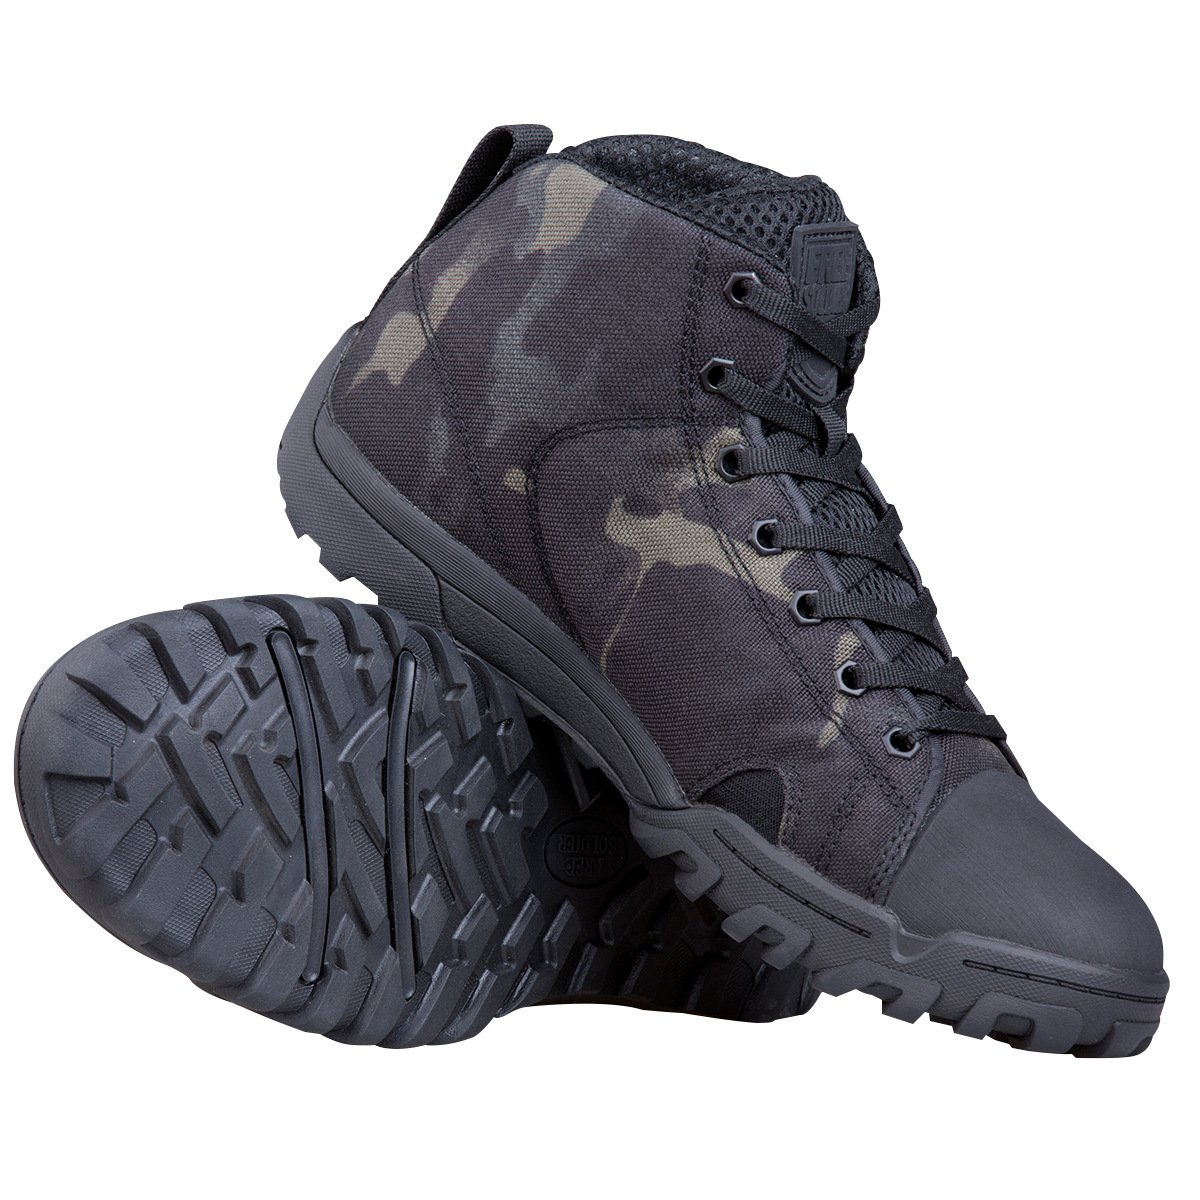 ef77973a3822a FREE SOLDIER Men's Tactical Boots Ankle Boots Lightweight Breathable  Military Boots Strong Grip Camo Combat Boots for Work